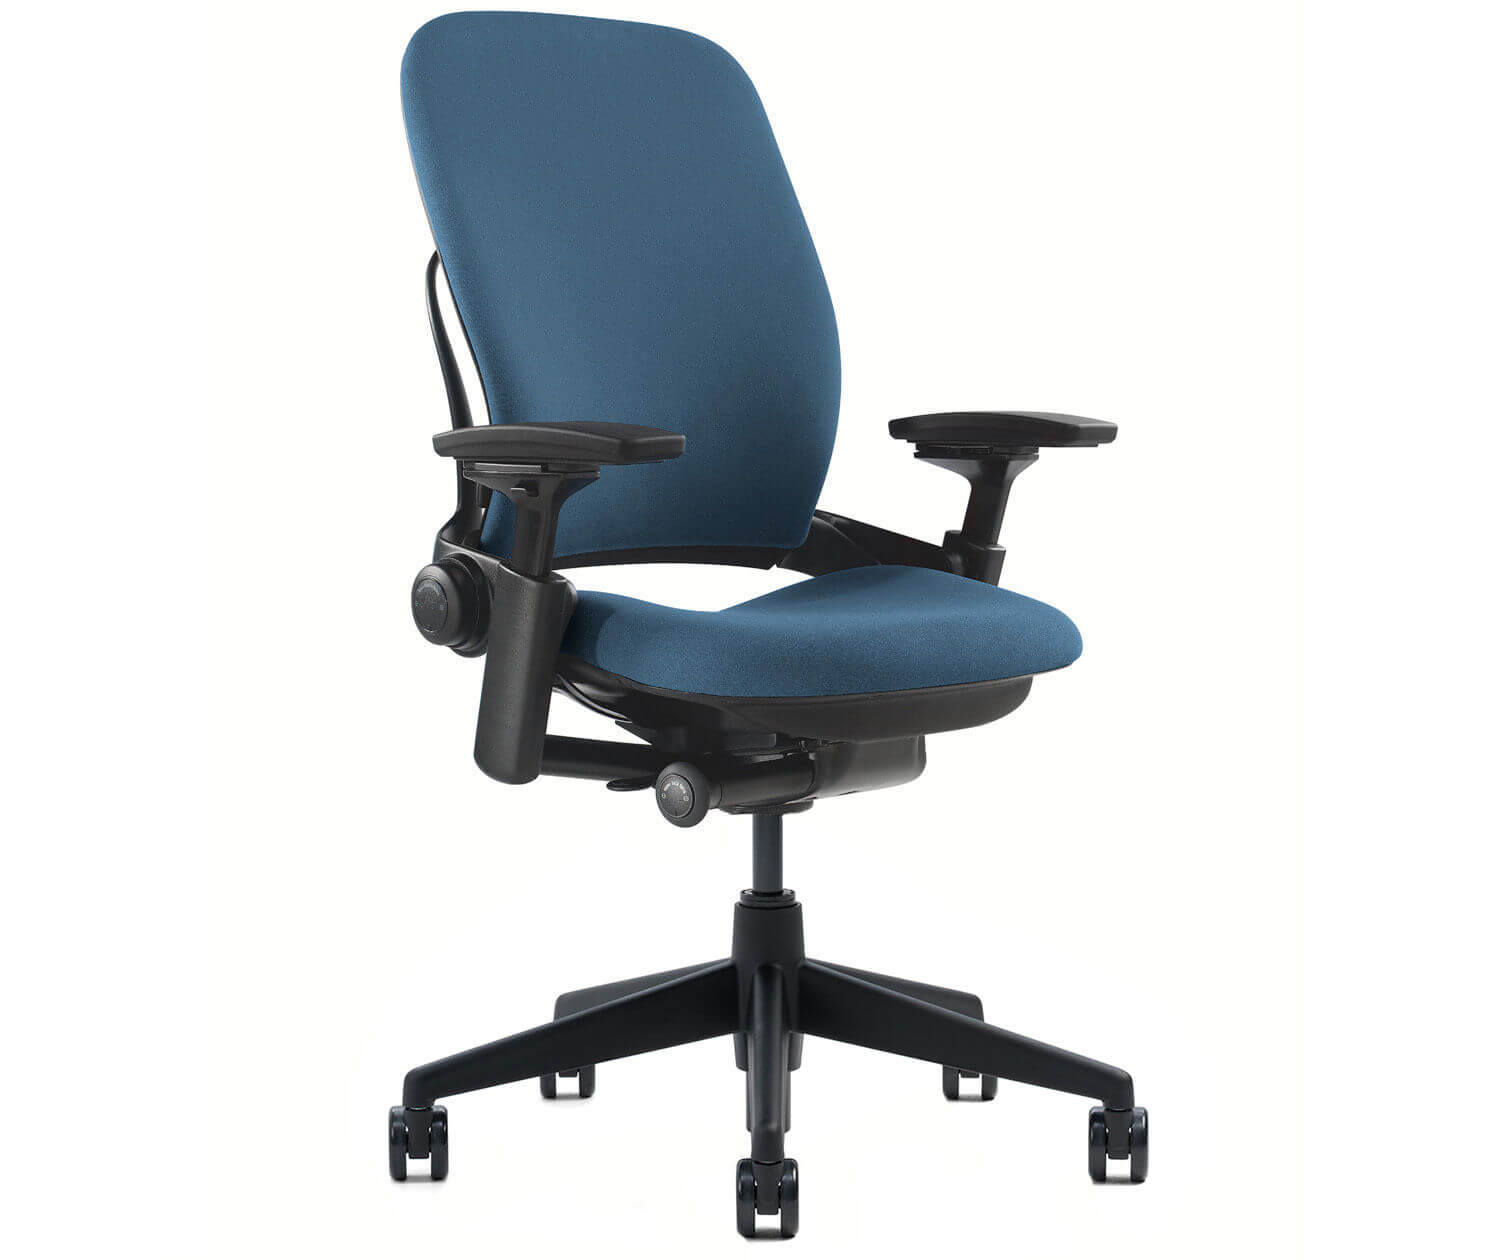 Steelcase Leap Chair Second Hand Office Chairs Used Office